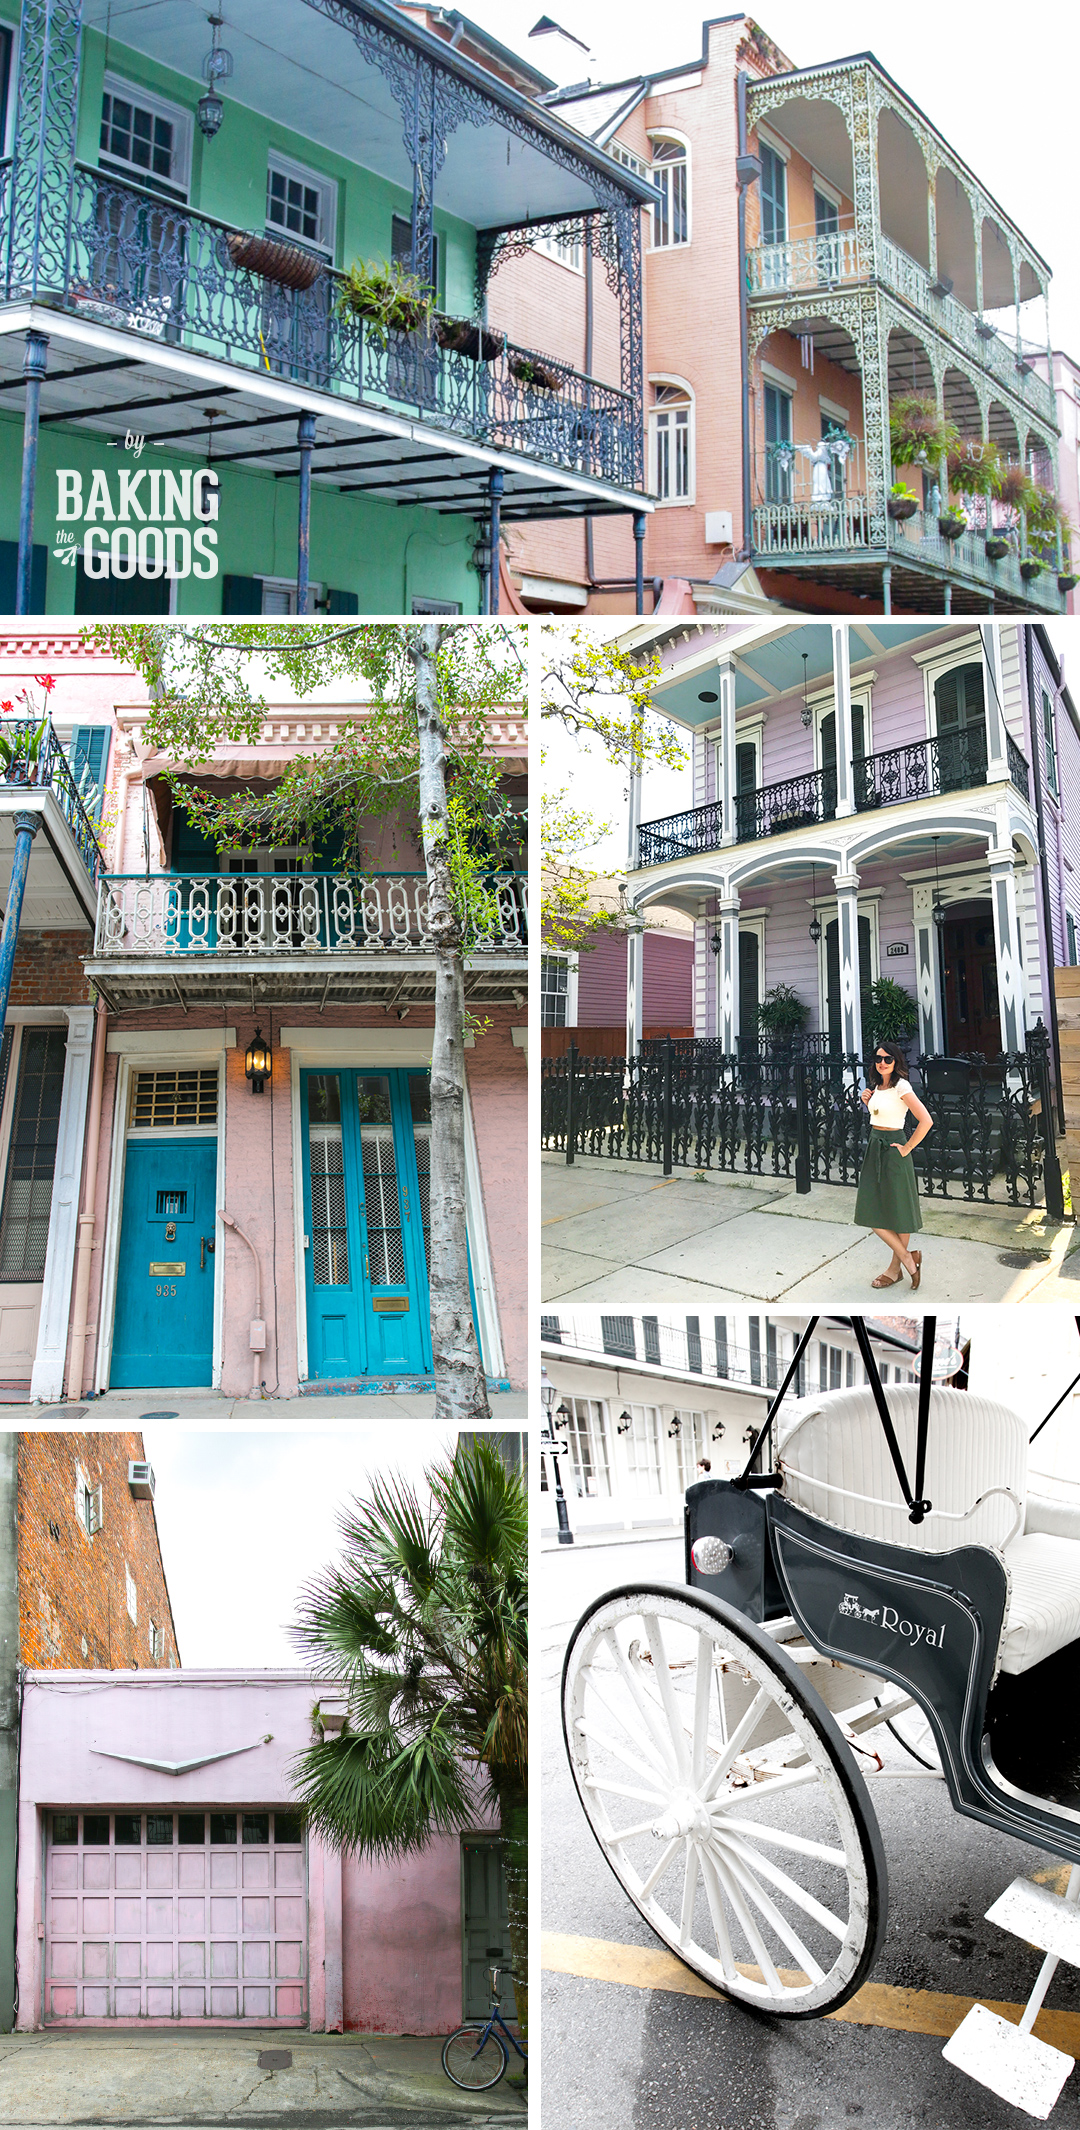 The French Quarter in New Orleans.